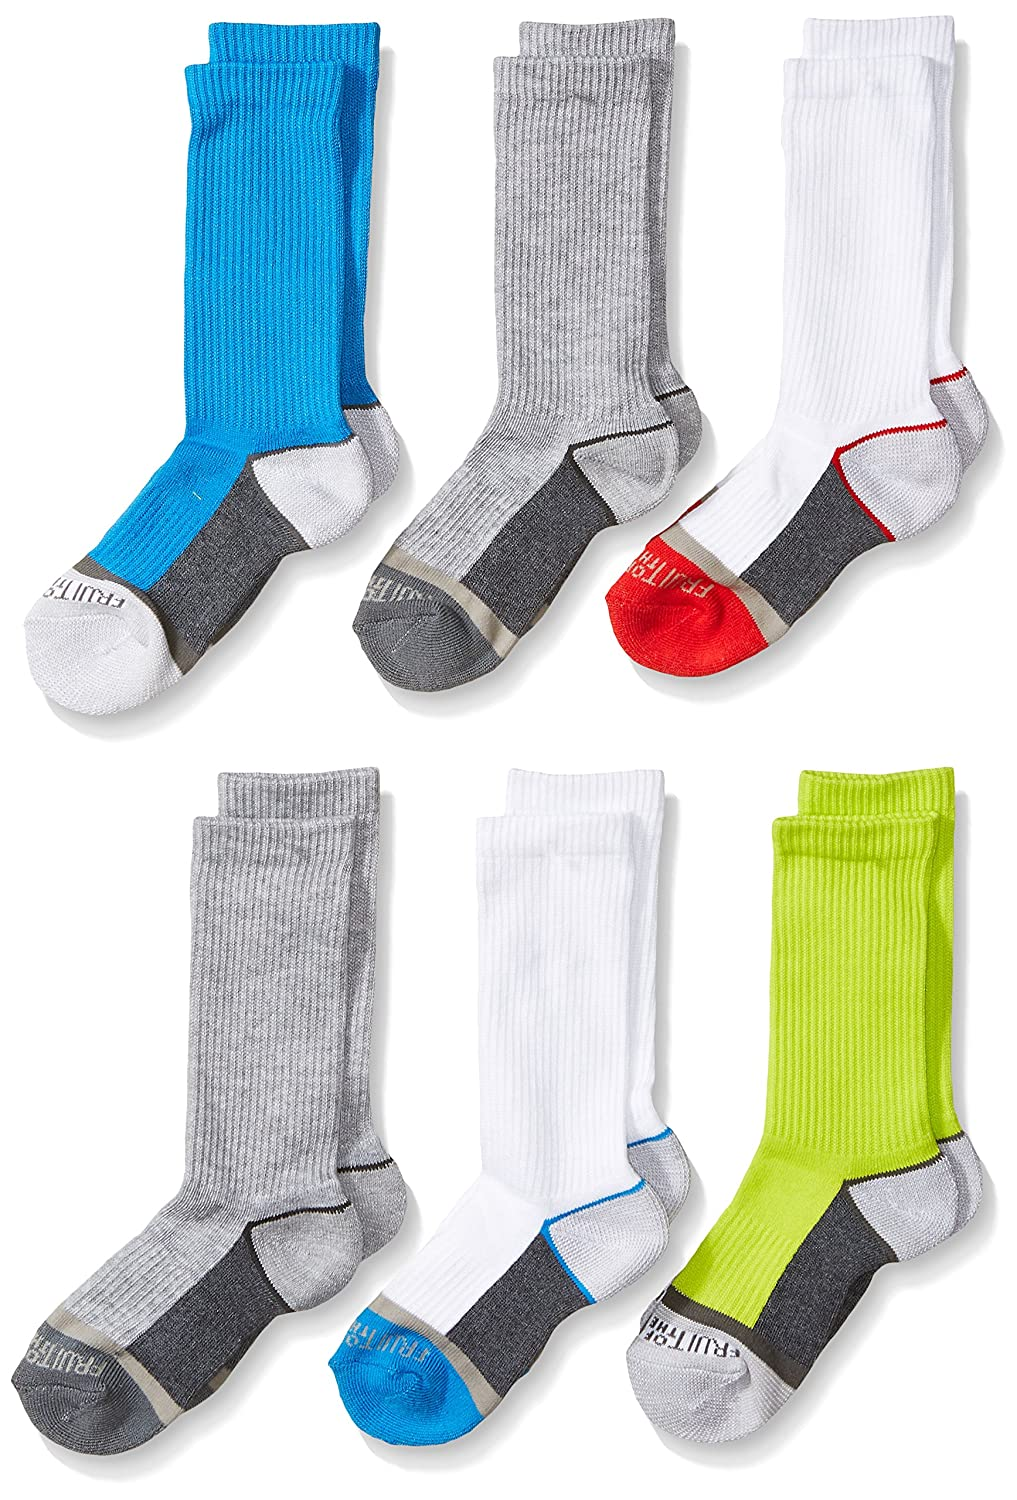 Fruit of the Loom Big Boy's 6 Pack Sport Crew Socks B4867BA6-C